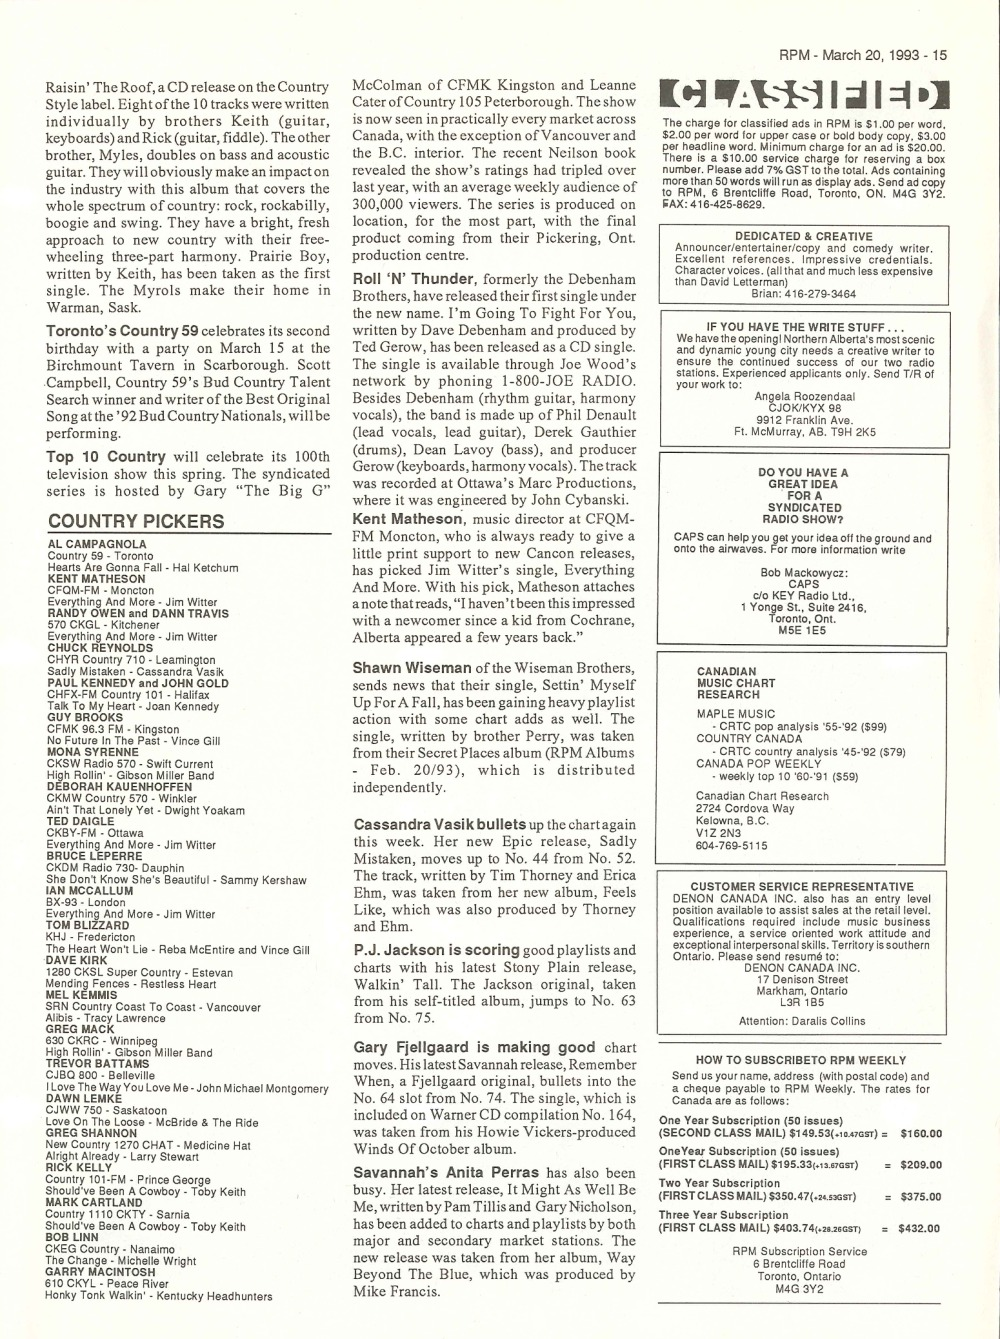 RPM Magazine: March 20, 1993 | 33 & 45 Records & Art